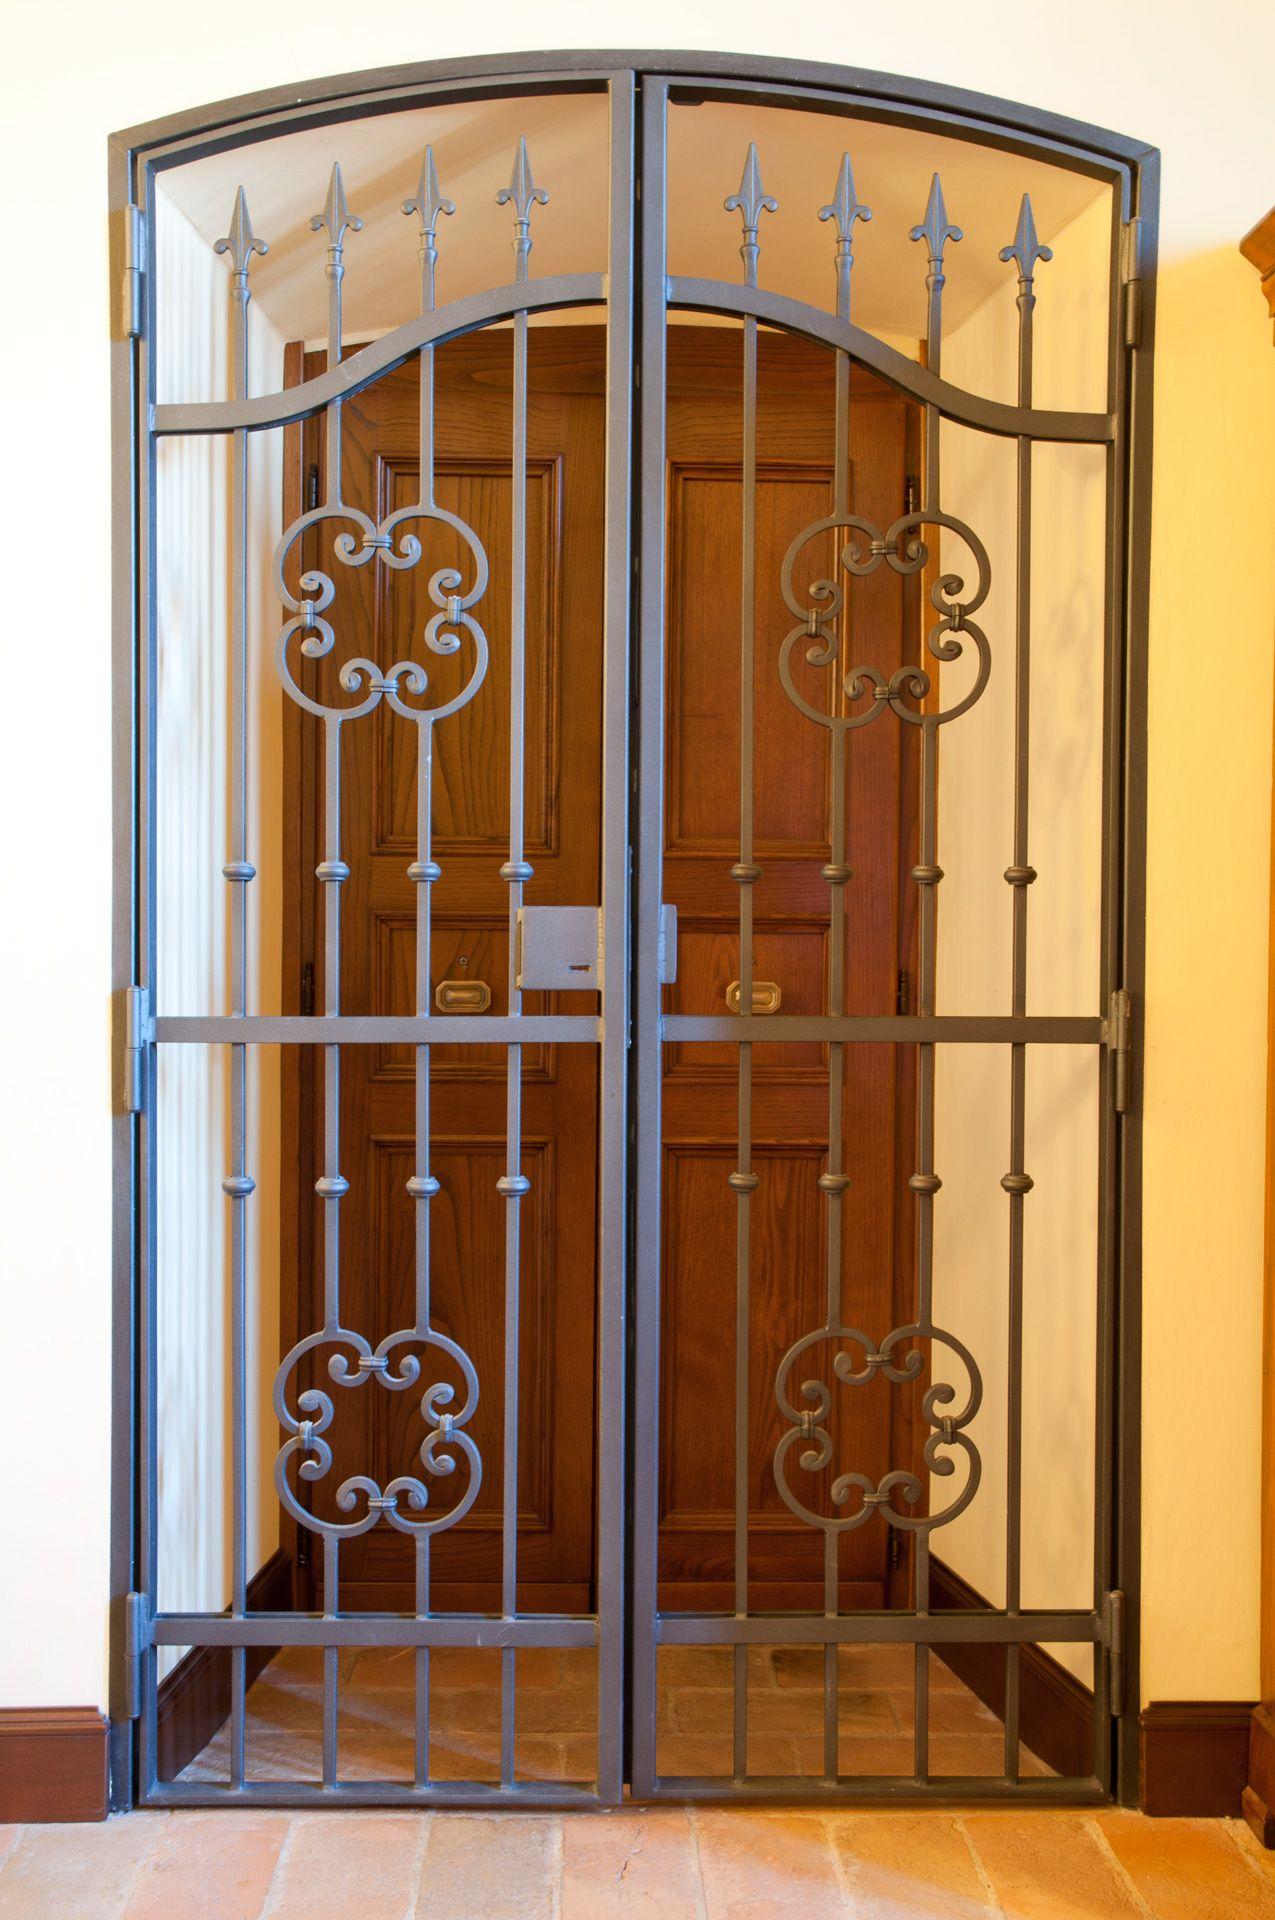 Decoration Stunning Wrought Iron Doors Design With Twin